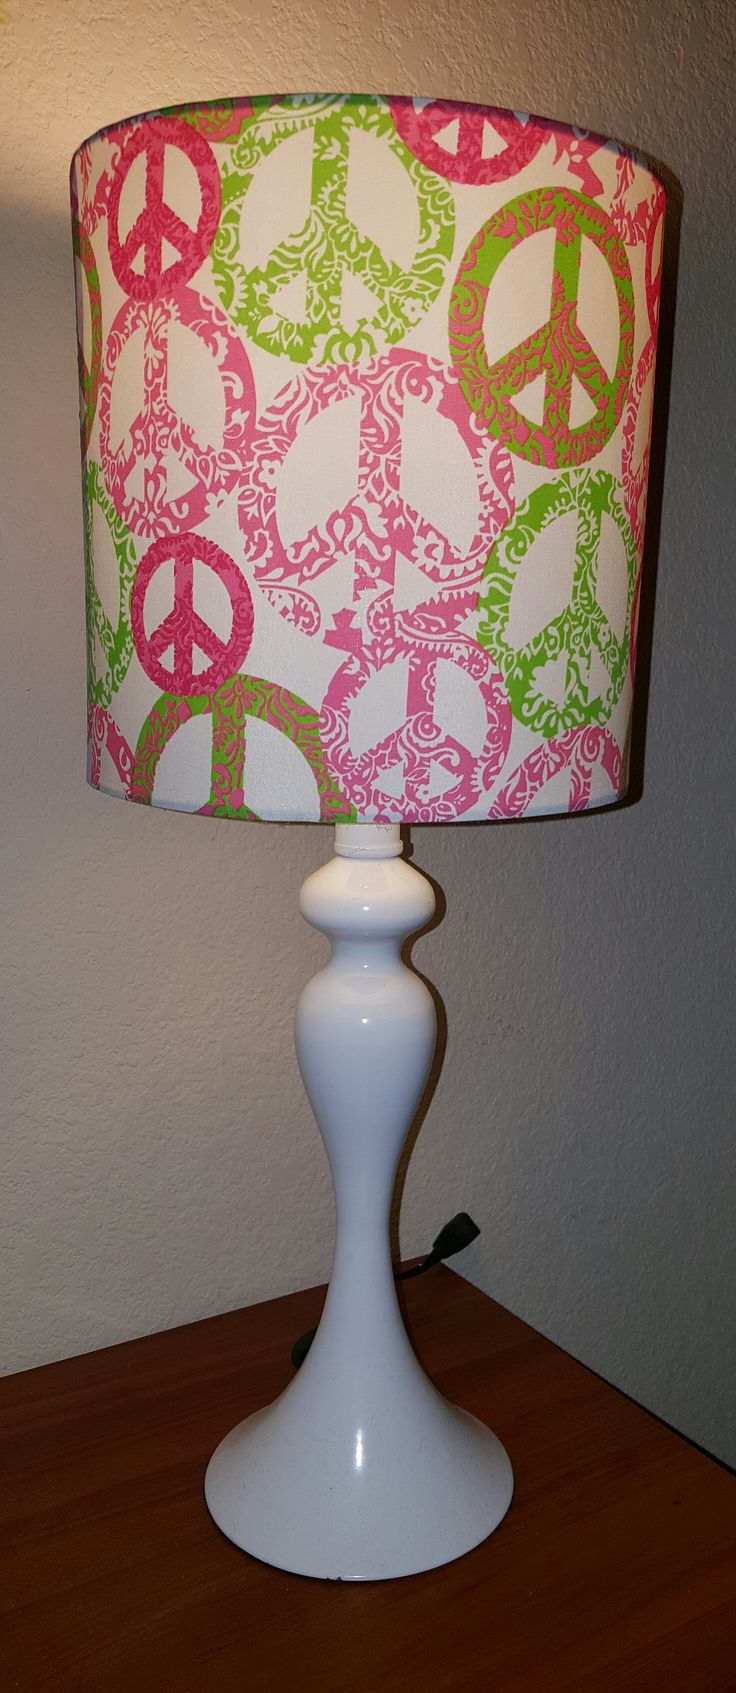 25 best our peace lighting images on pinterest peace signs 2 peace sign lamps aloadofball Gallery